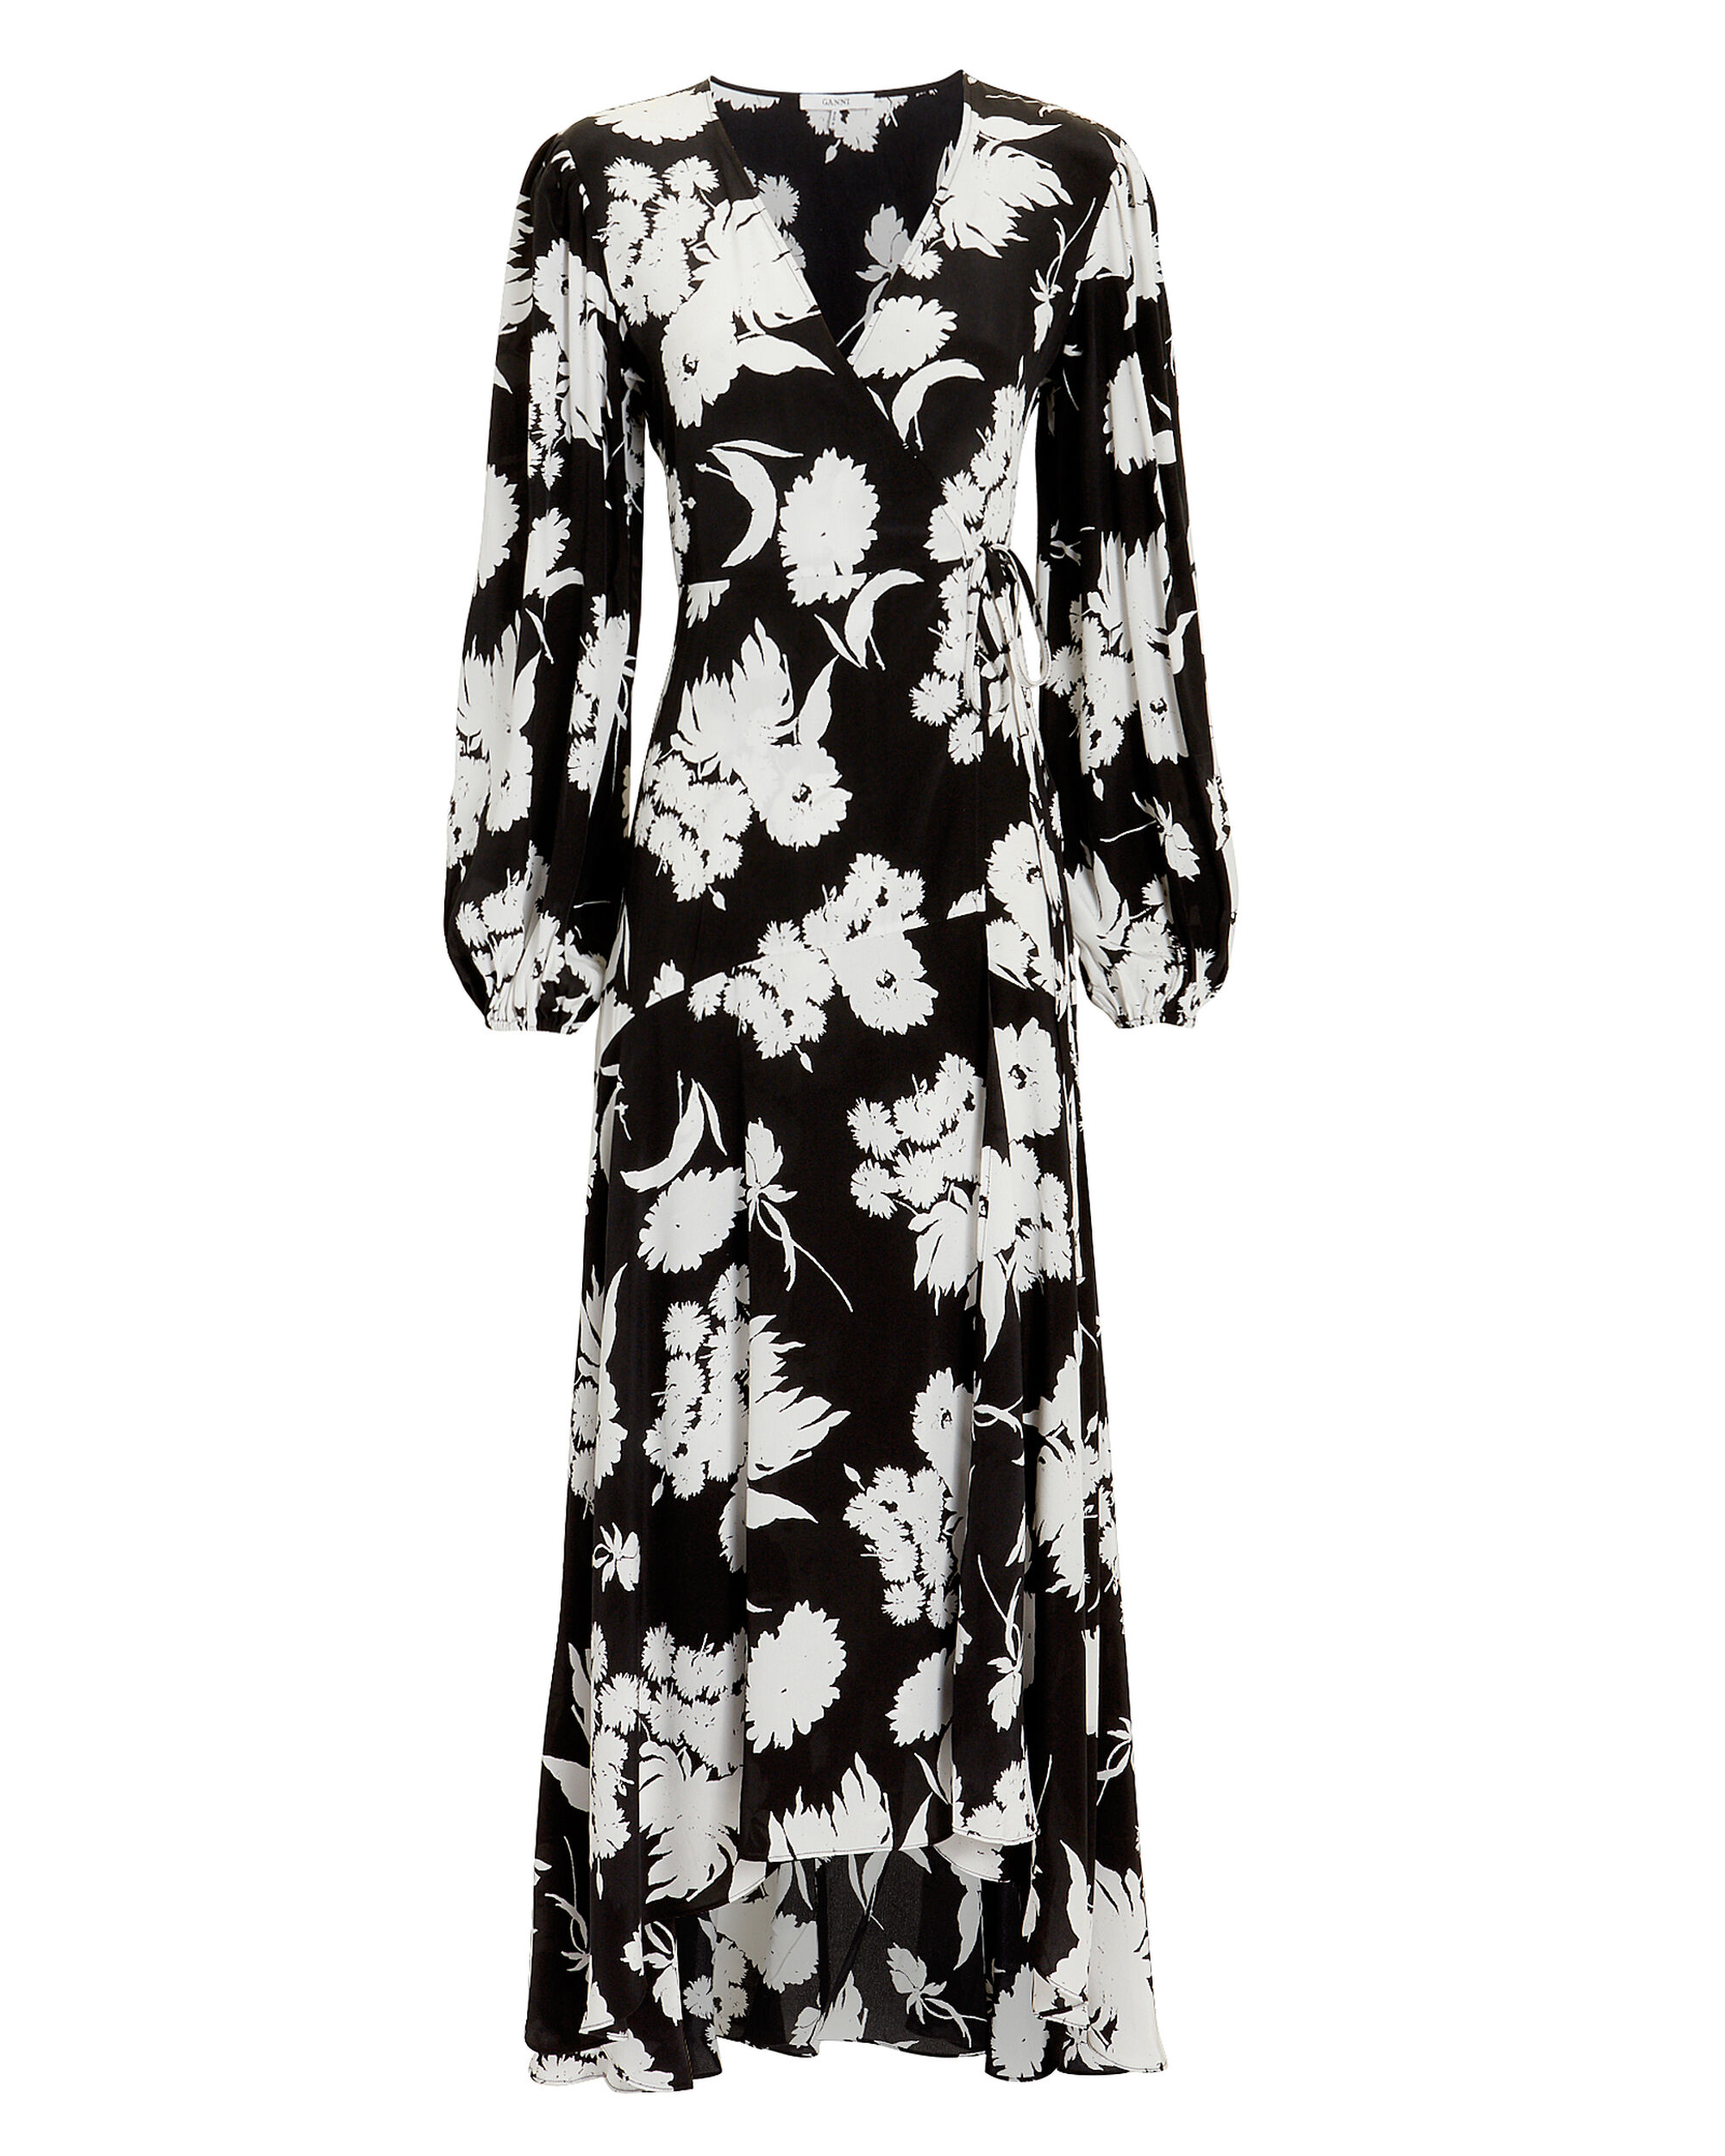 Kochhar Printed Wrap Dress, BLACK, hi-res